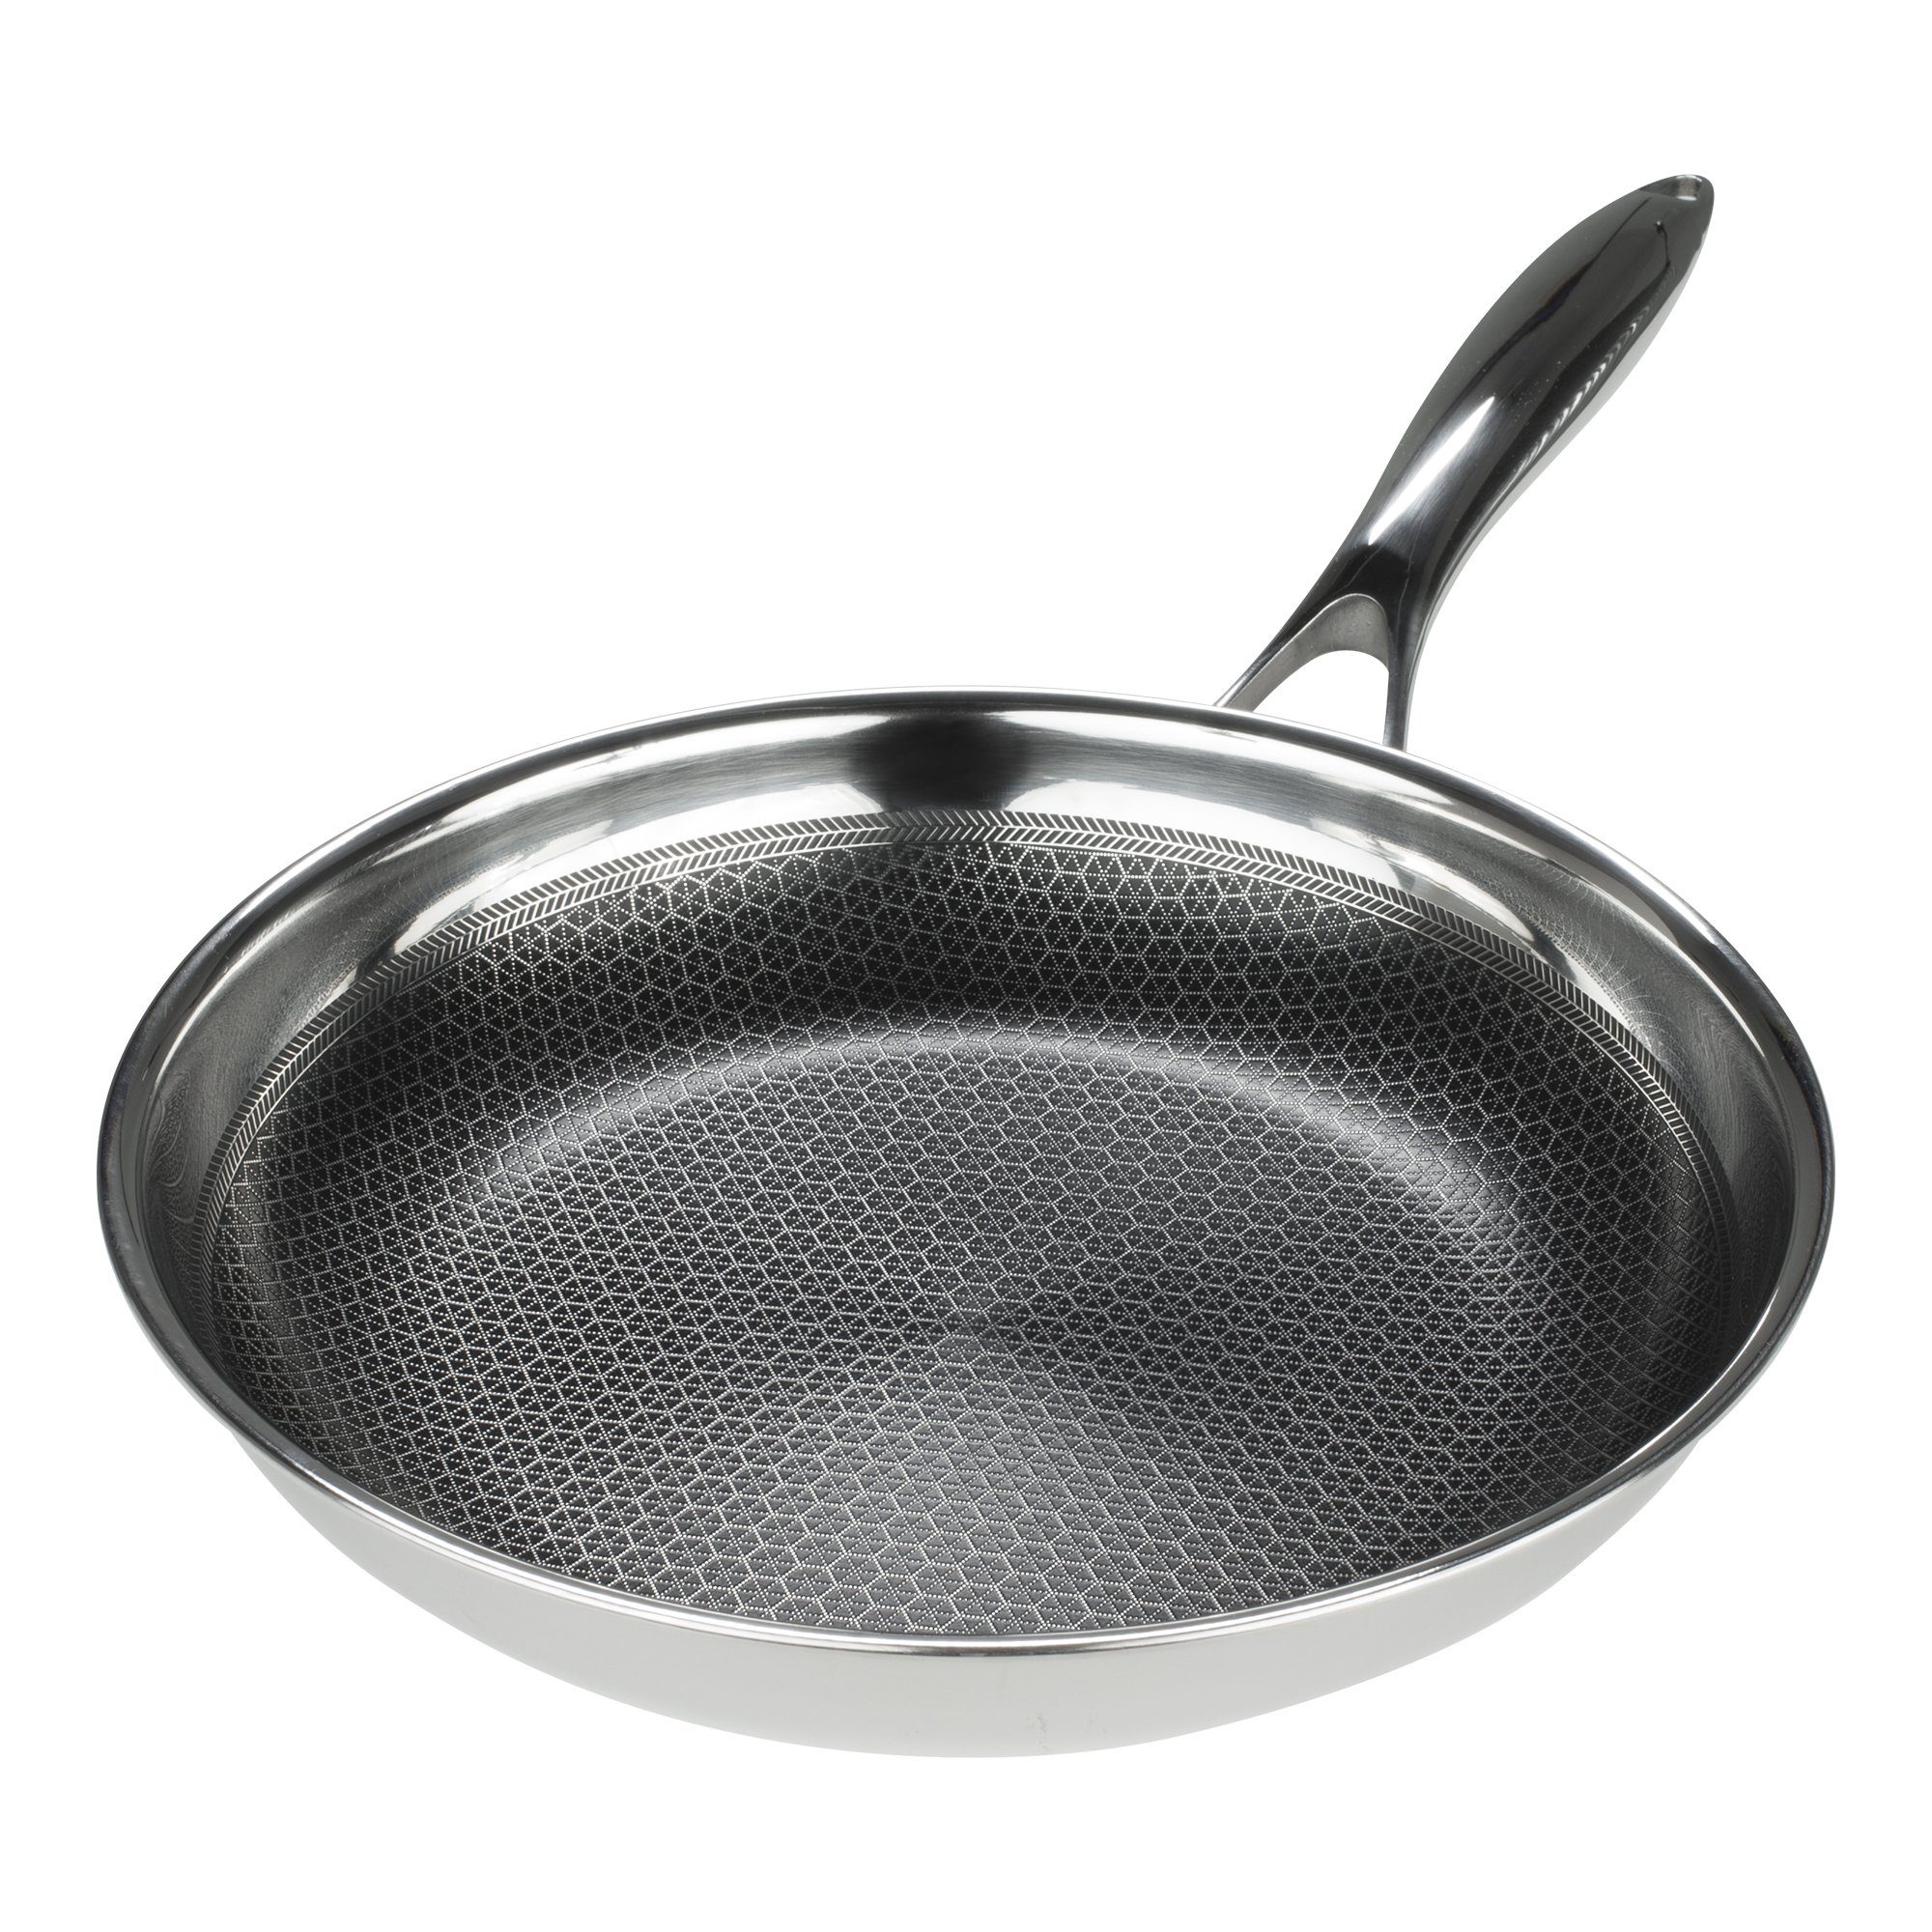 Frieling USA Black Cube Hybrid Stainless/Nonstick Cookware Fry Pan, 9 1/2-Inch